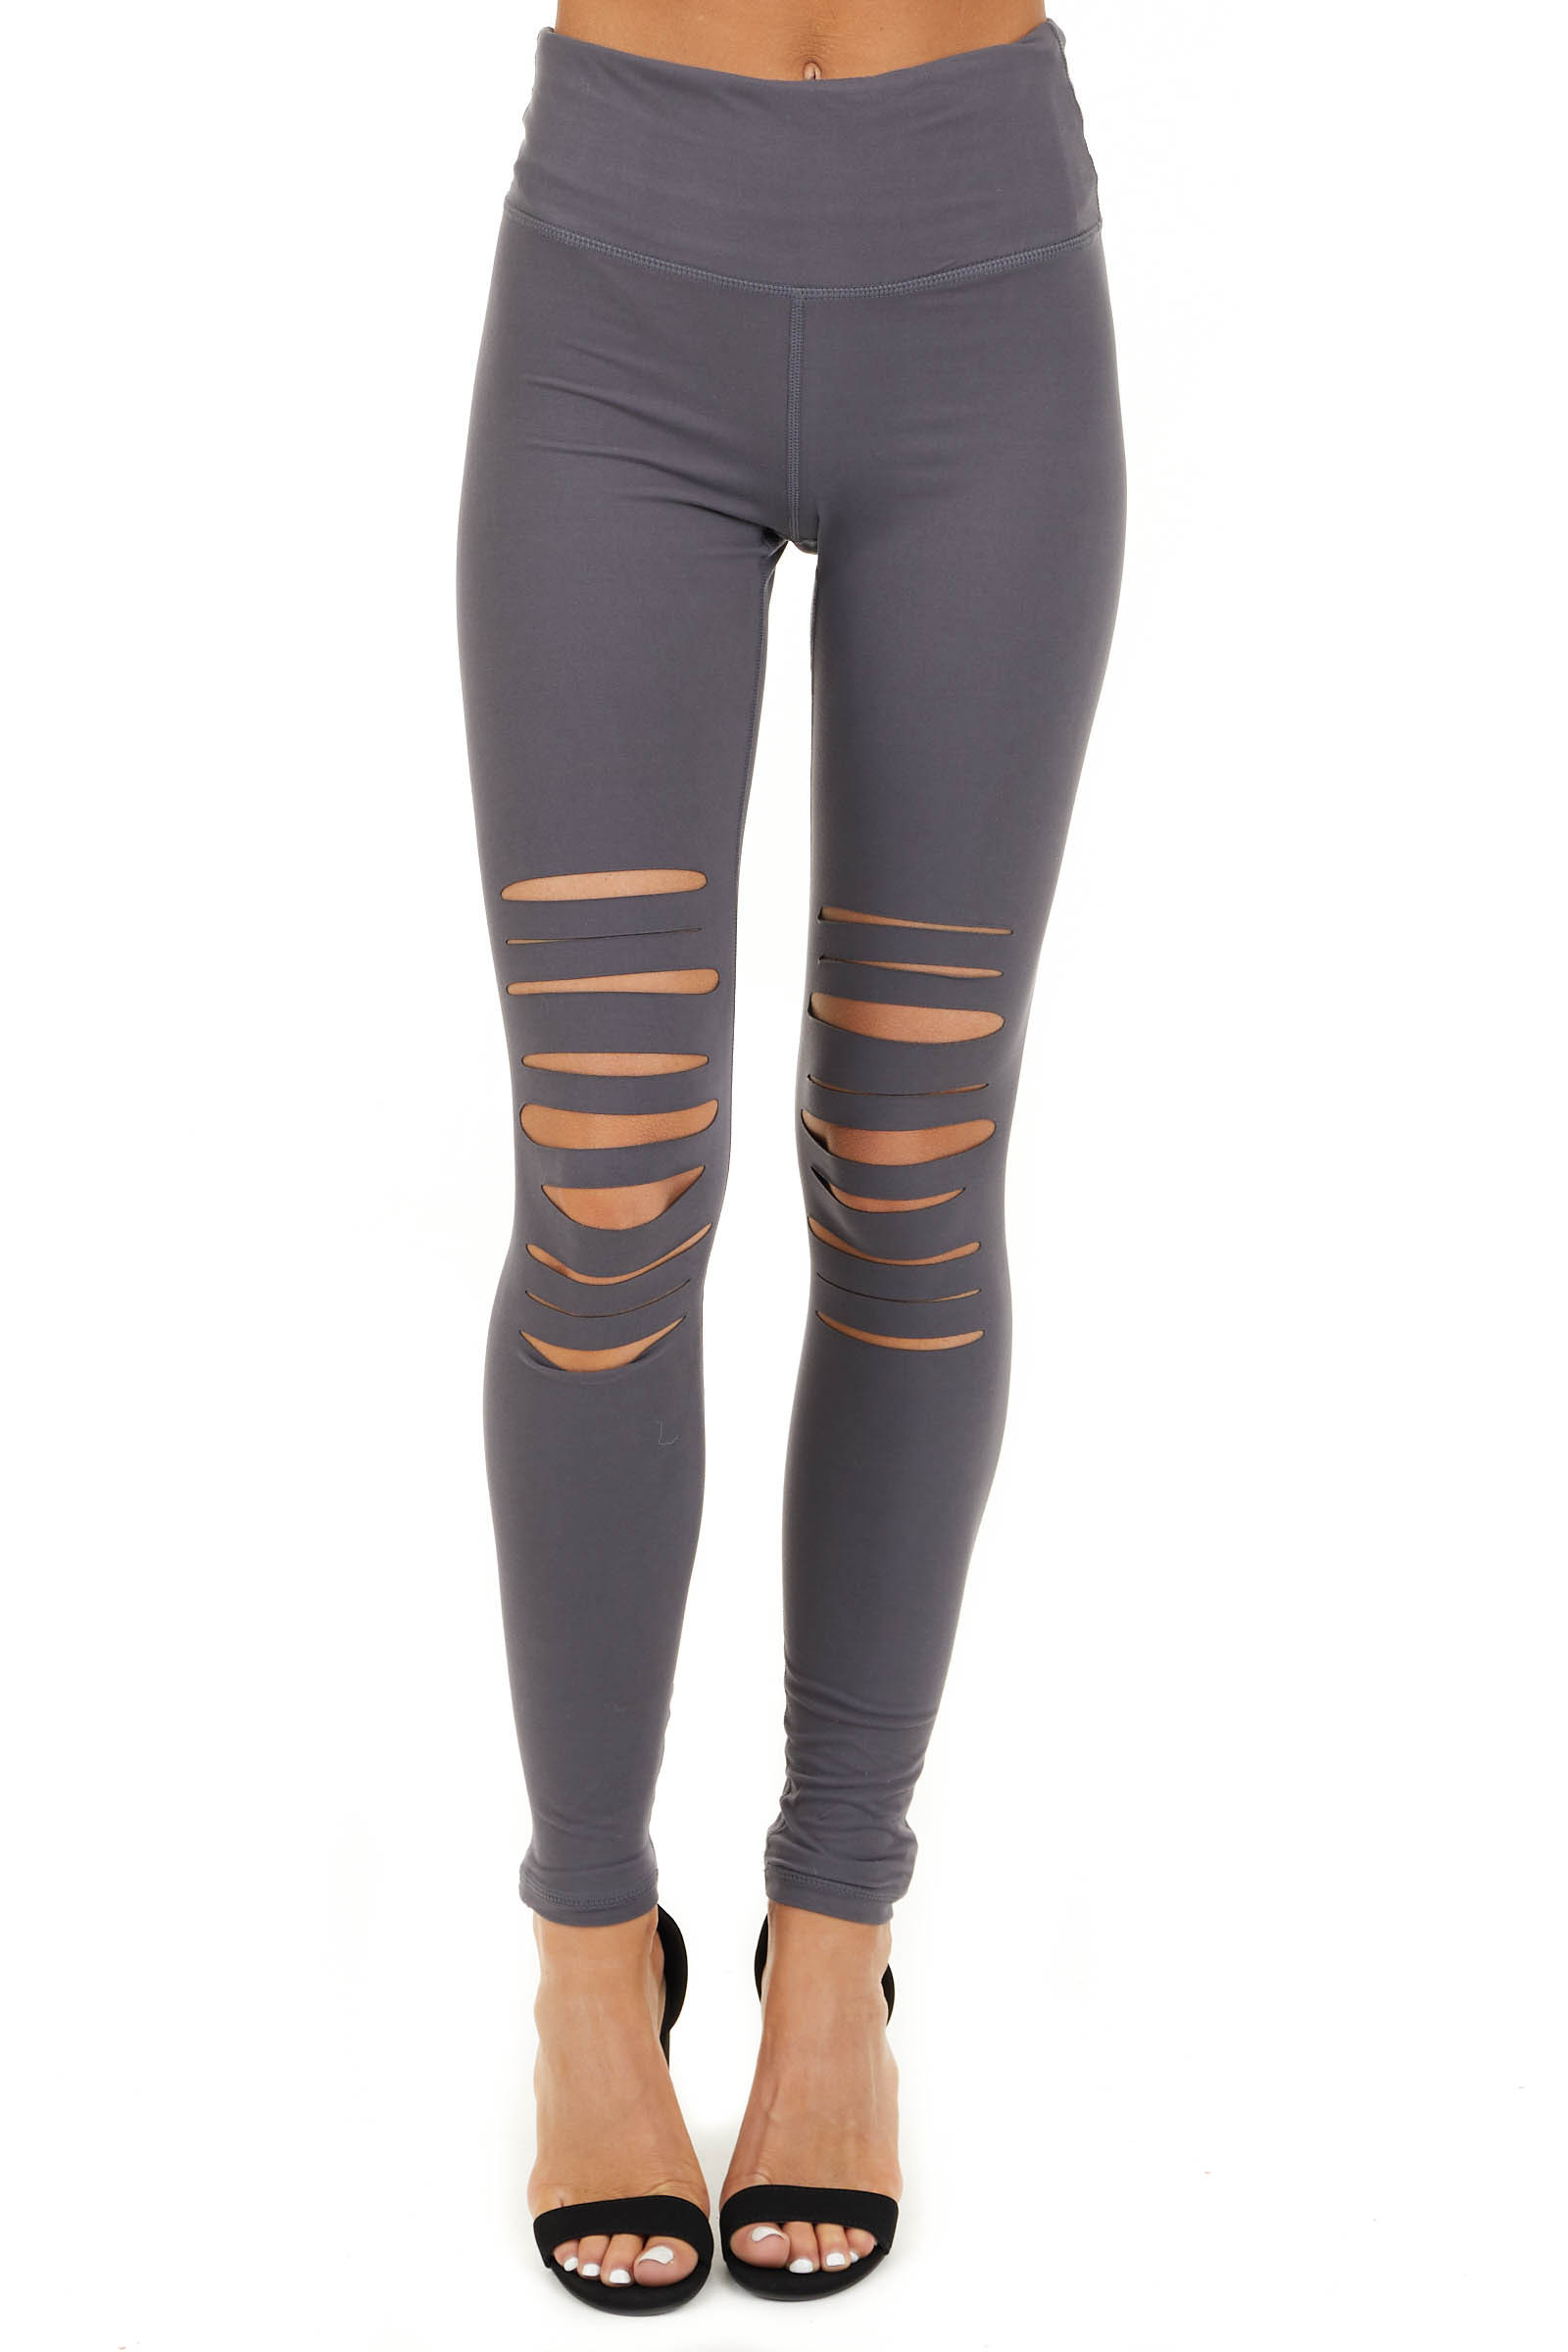 Charcoal Solid Leggings with Laser Cutout Details front view